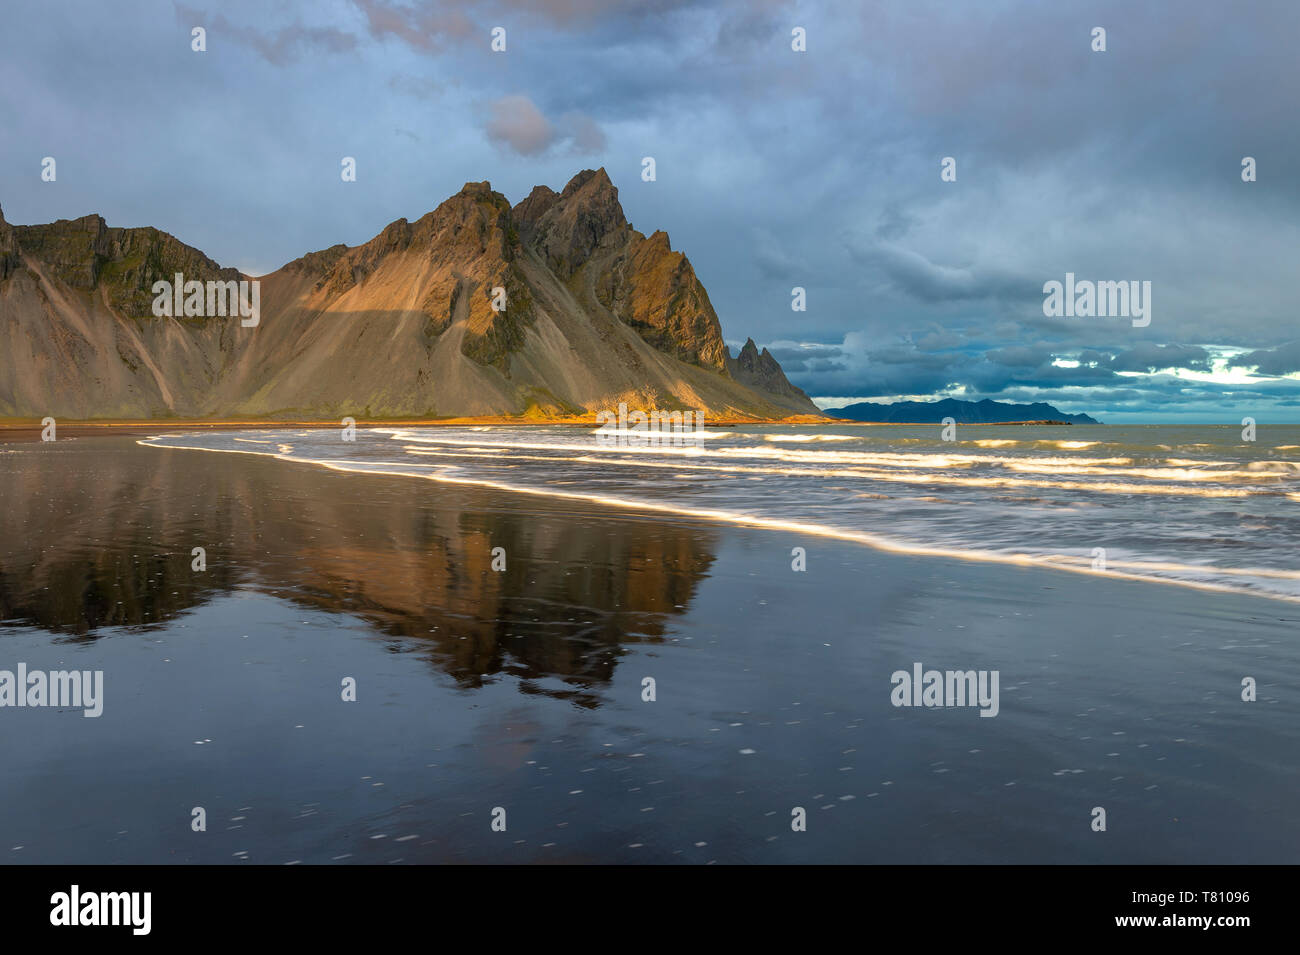 View of the mountains of Vestrahorn from black volcanic sand beach at sunset, Stokksnes, South Iceland, Iceland, Polar Regions - Stock Image